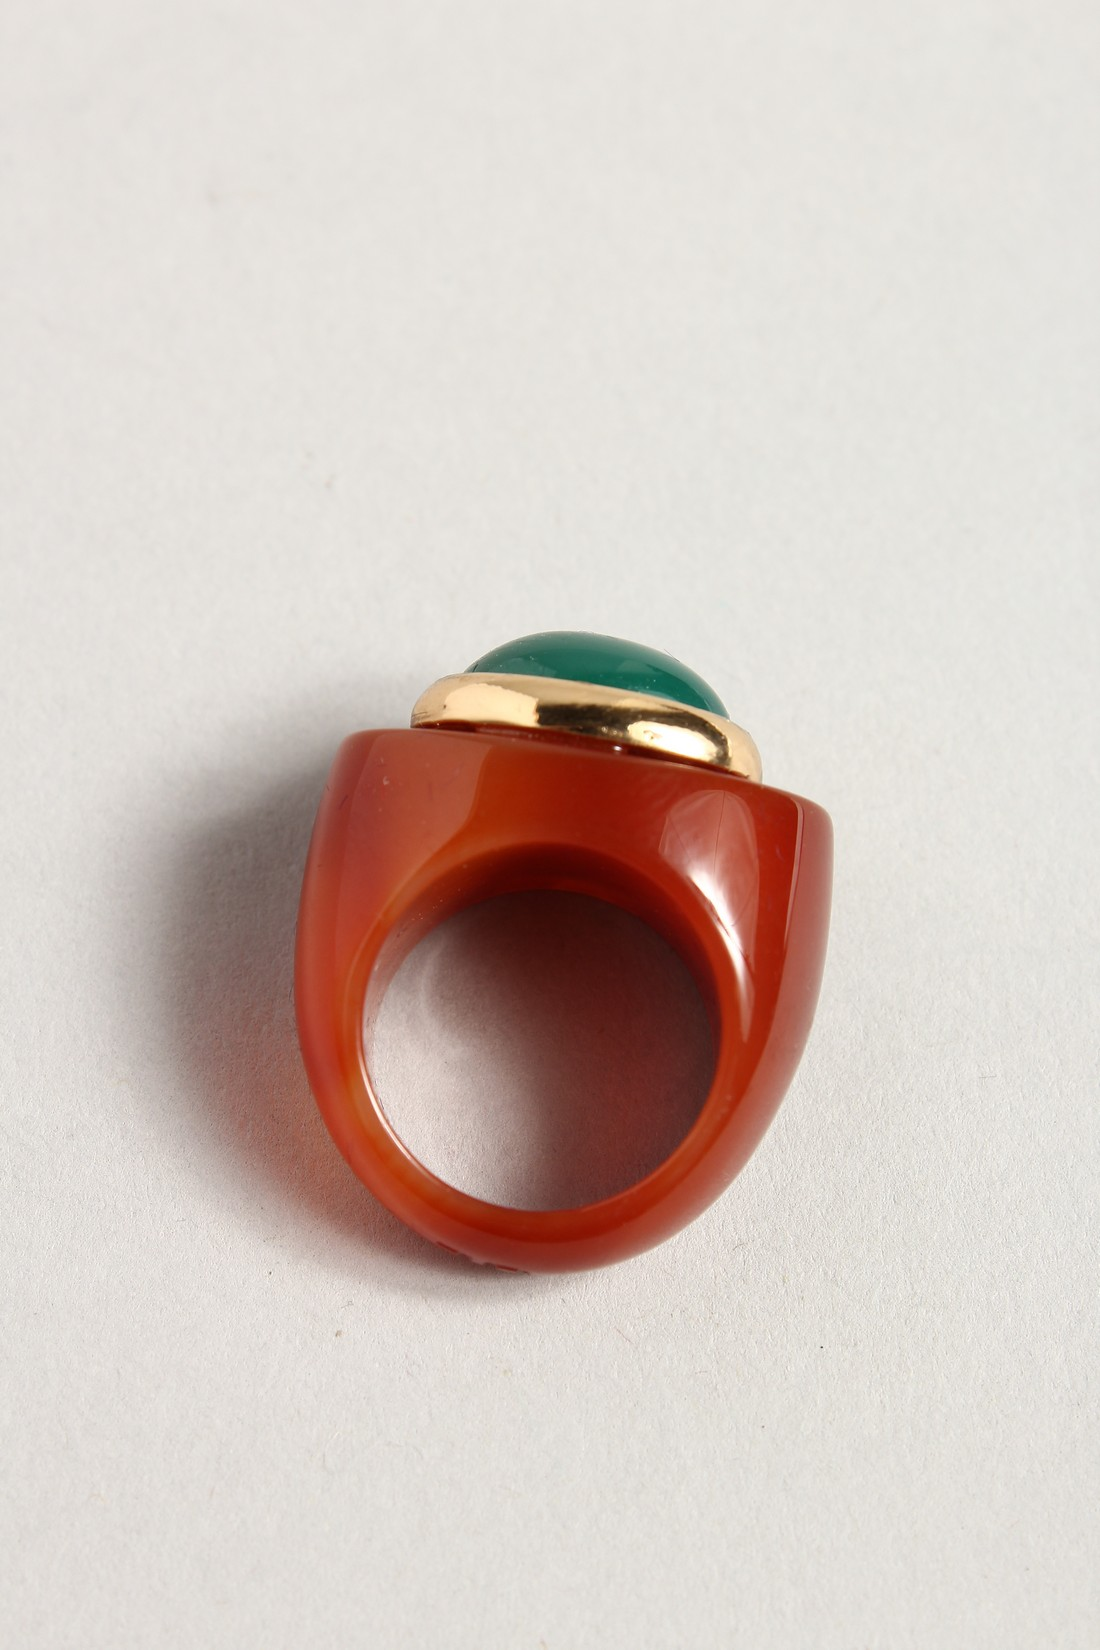 A GREEN STONE, DESIGNER RING. - Image 2 of 2